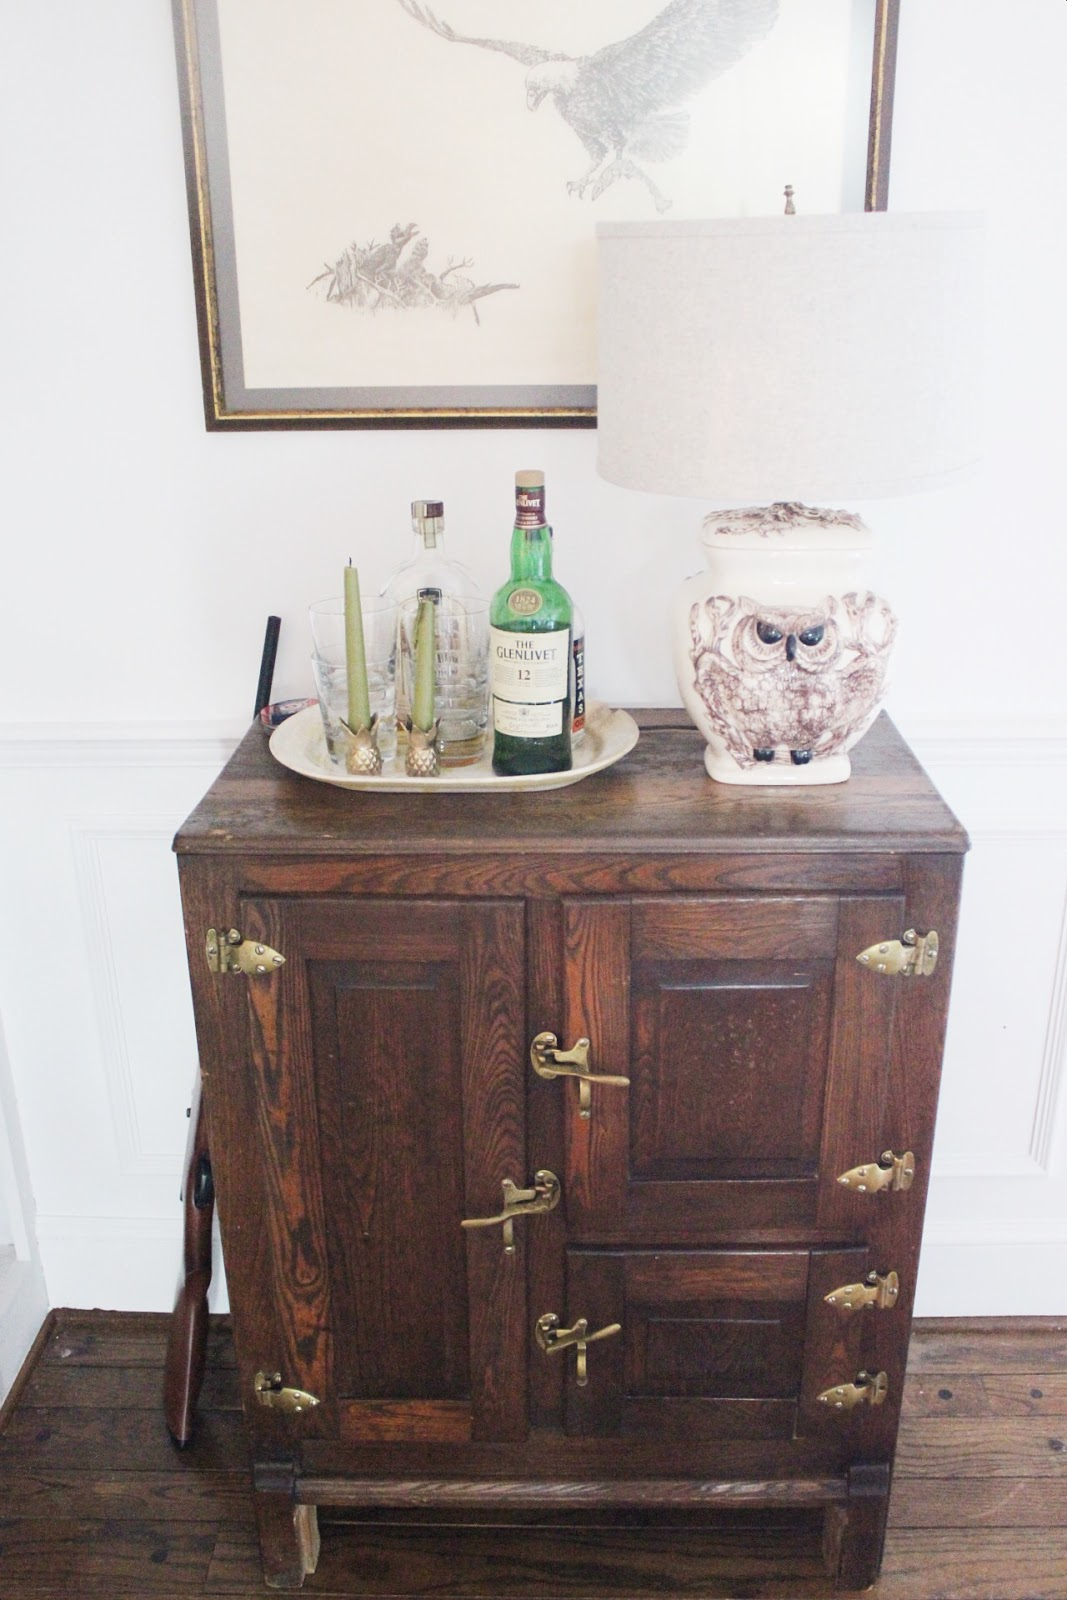 The Sourced Home How To Find Good Stuff Craigslist